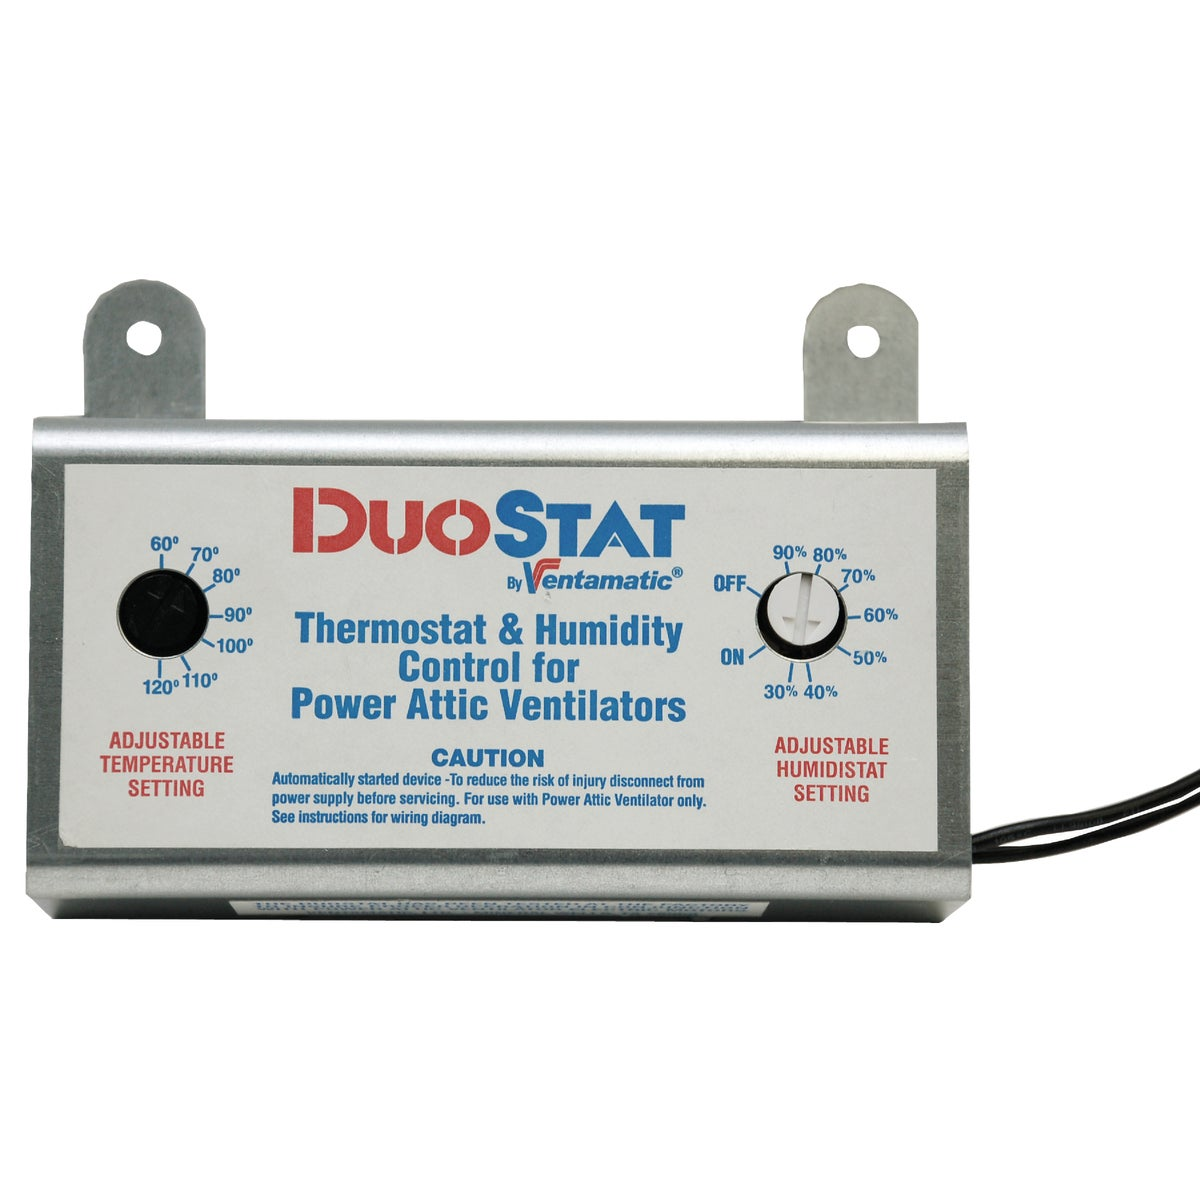 THERMOSTAT/HUMIDSTAT - XXDUOSTAT by Ventamatic Ltd